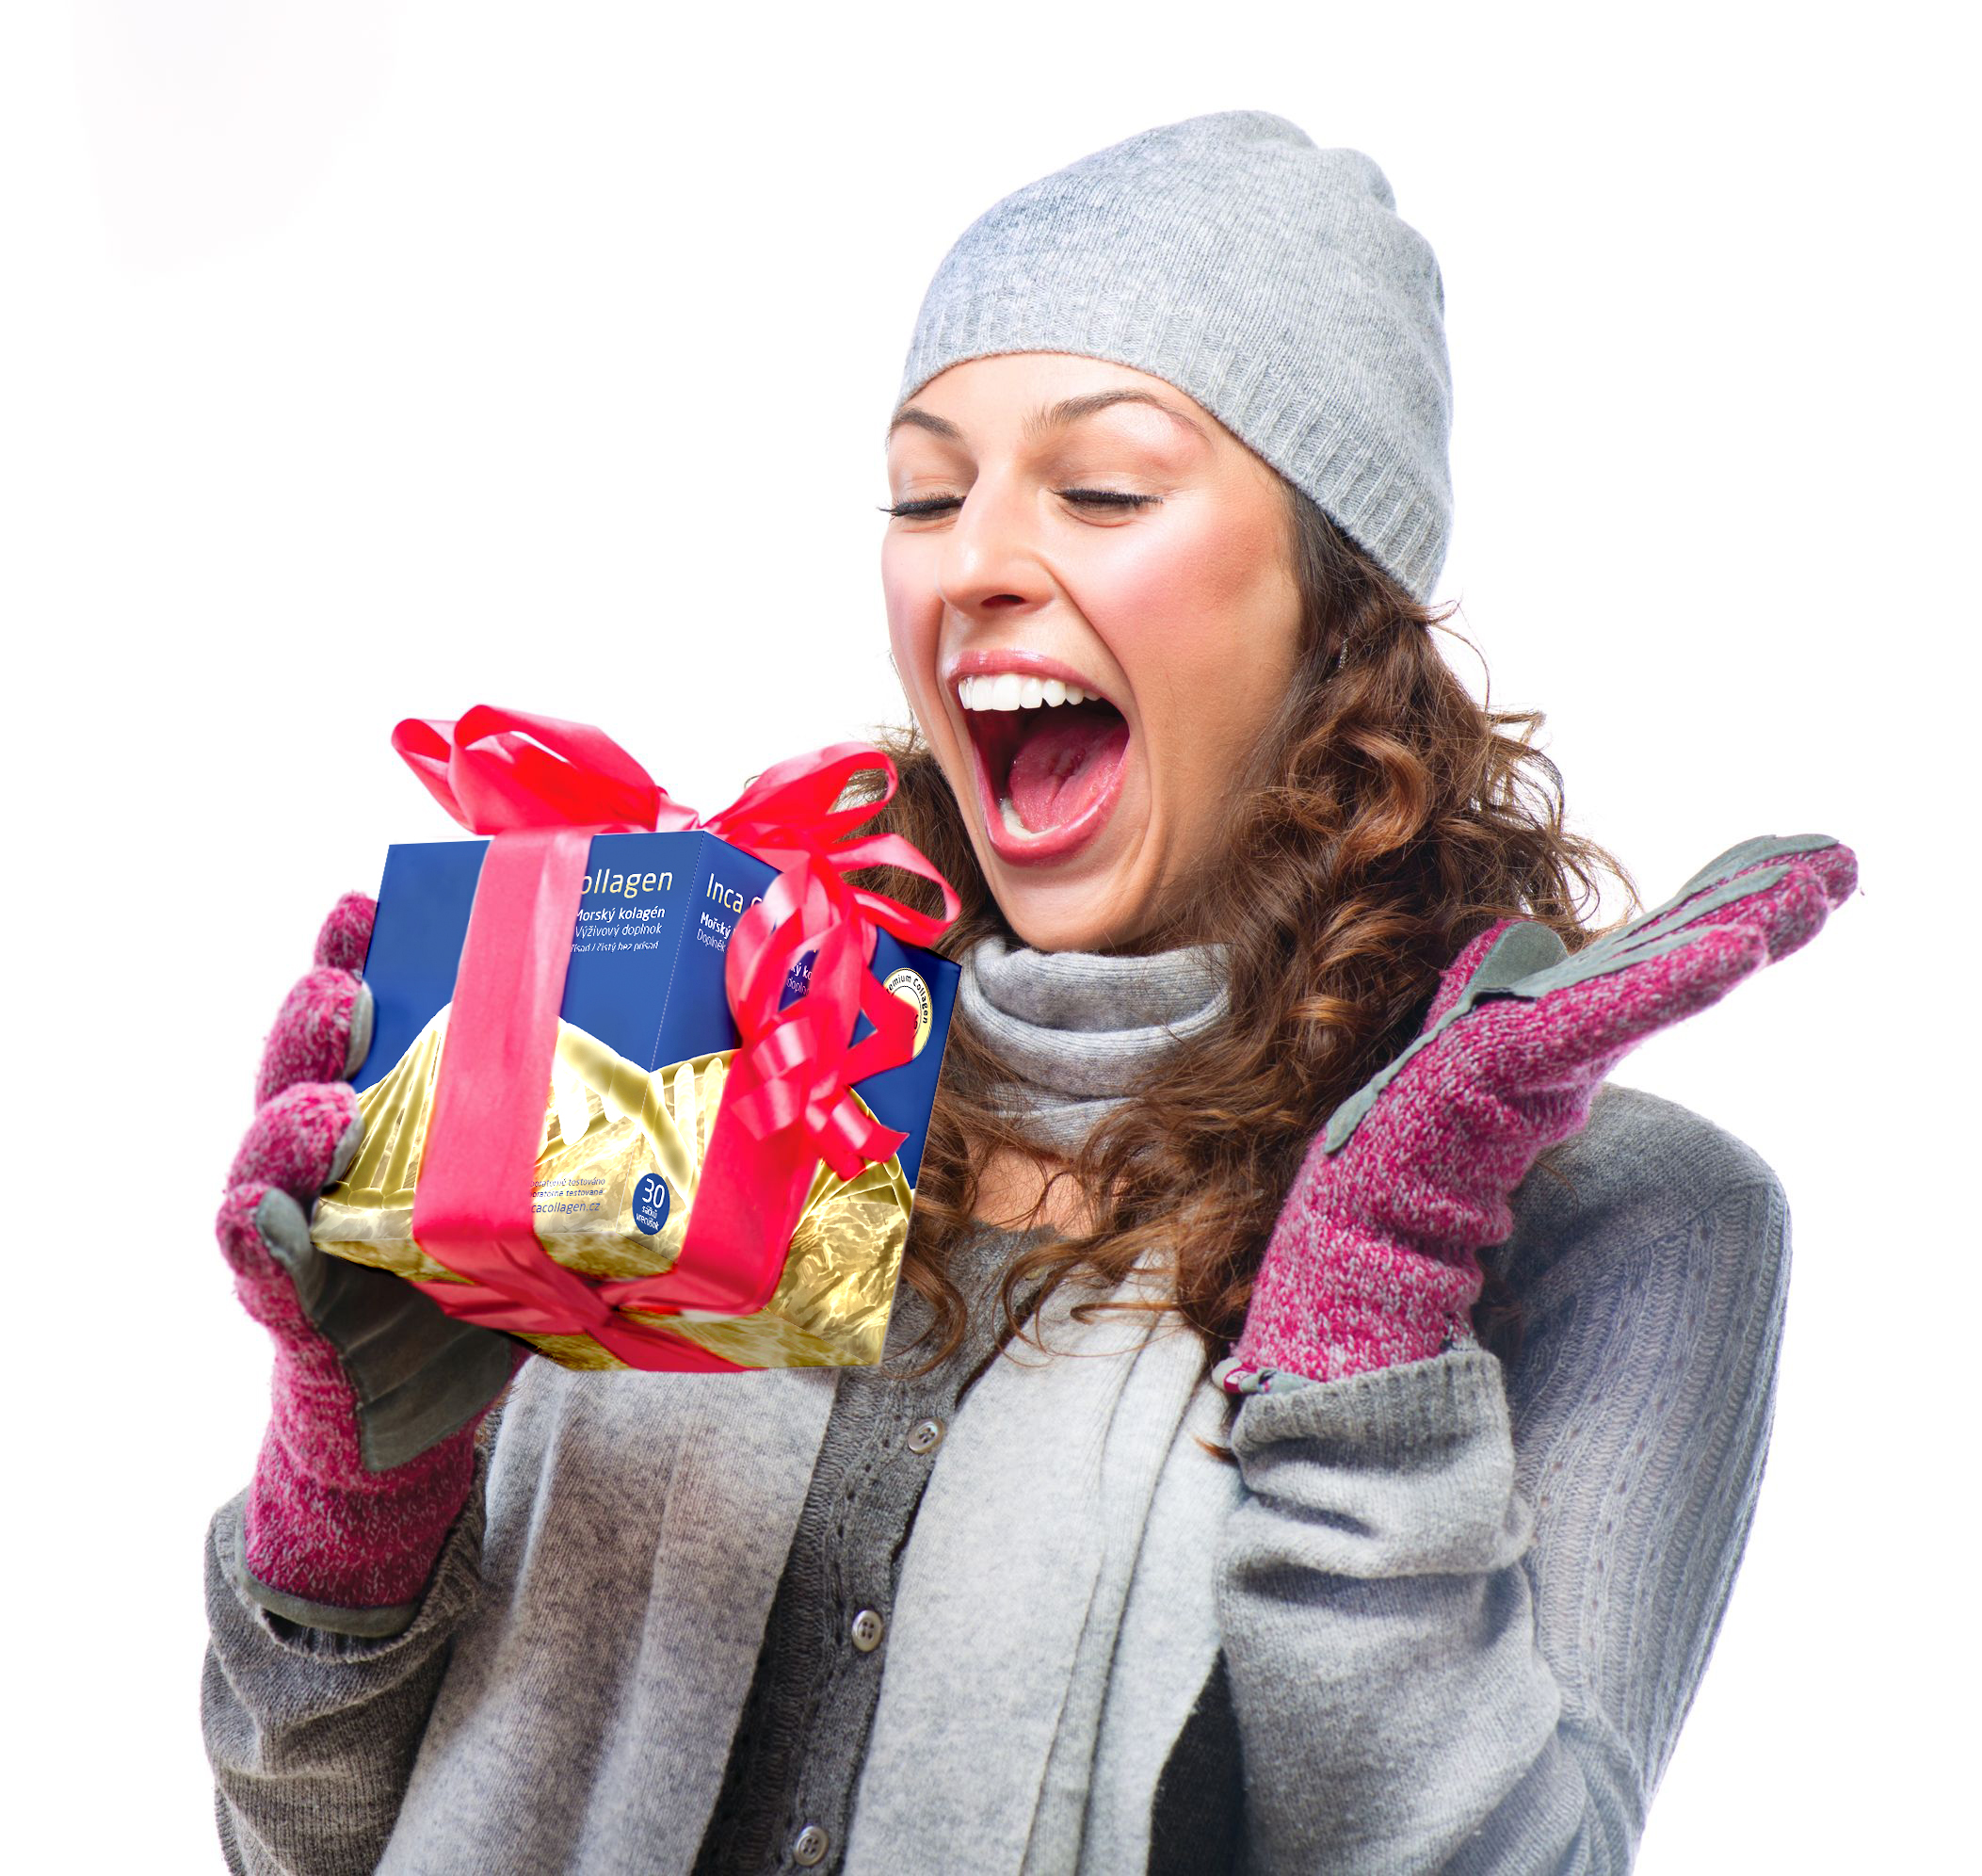 16854714 - happy young woman with christmas gift box